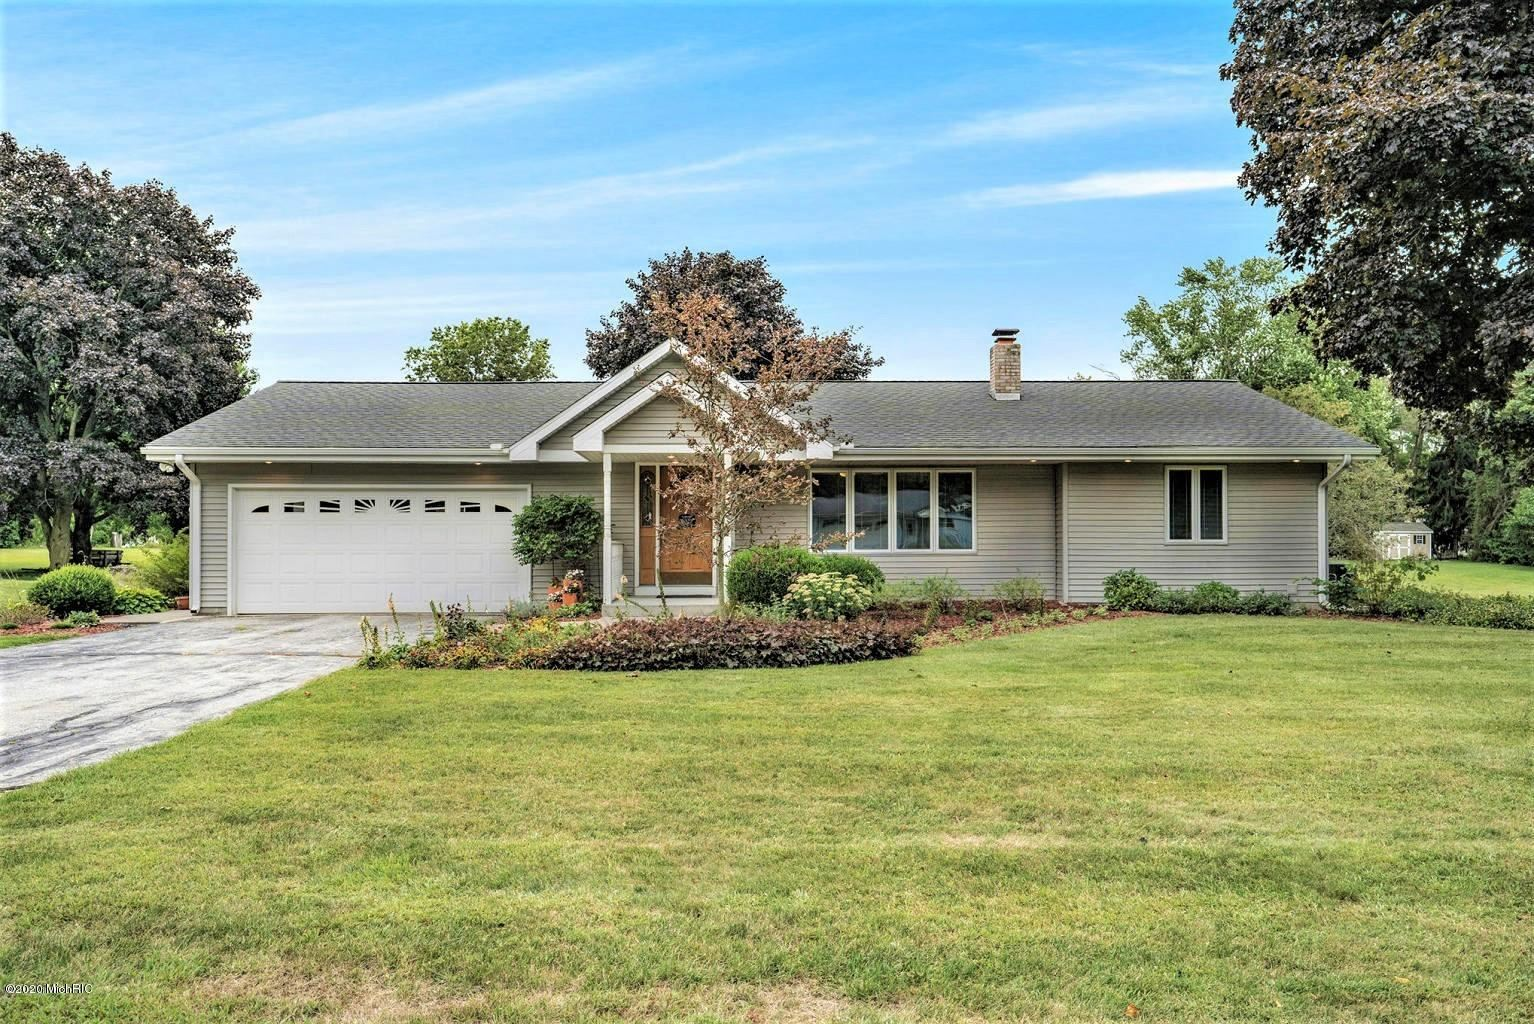 Photo for 5716 Orchard Drive, Berrien Springs, MI 49103 (MLS # 20001440)